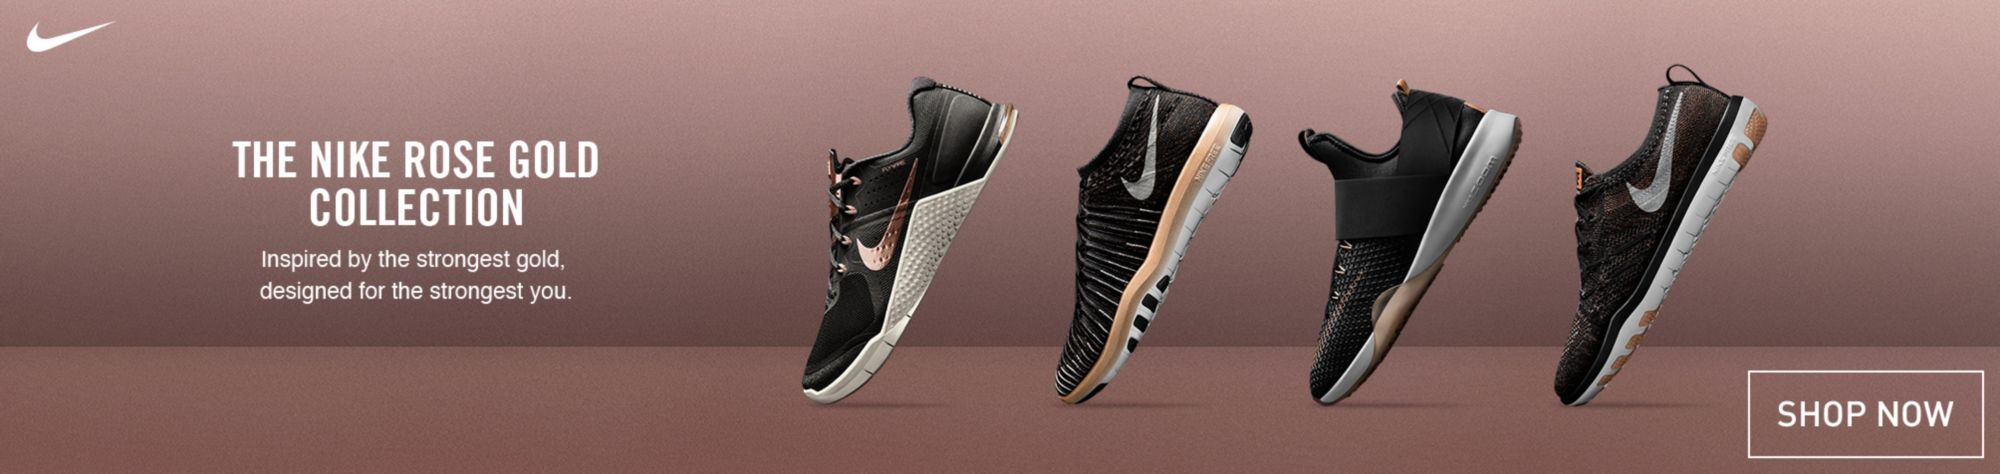 Nike Rose Gold Collection